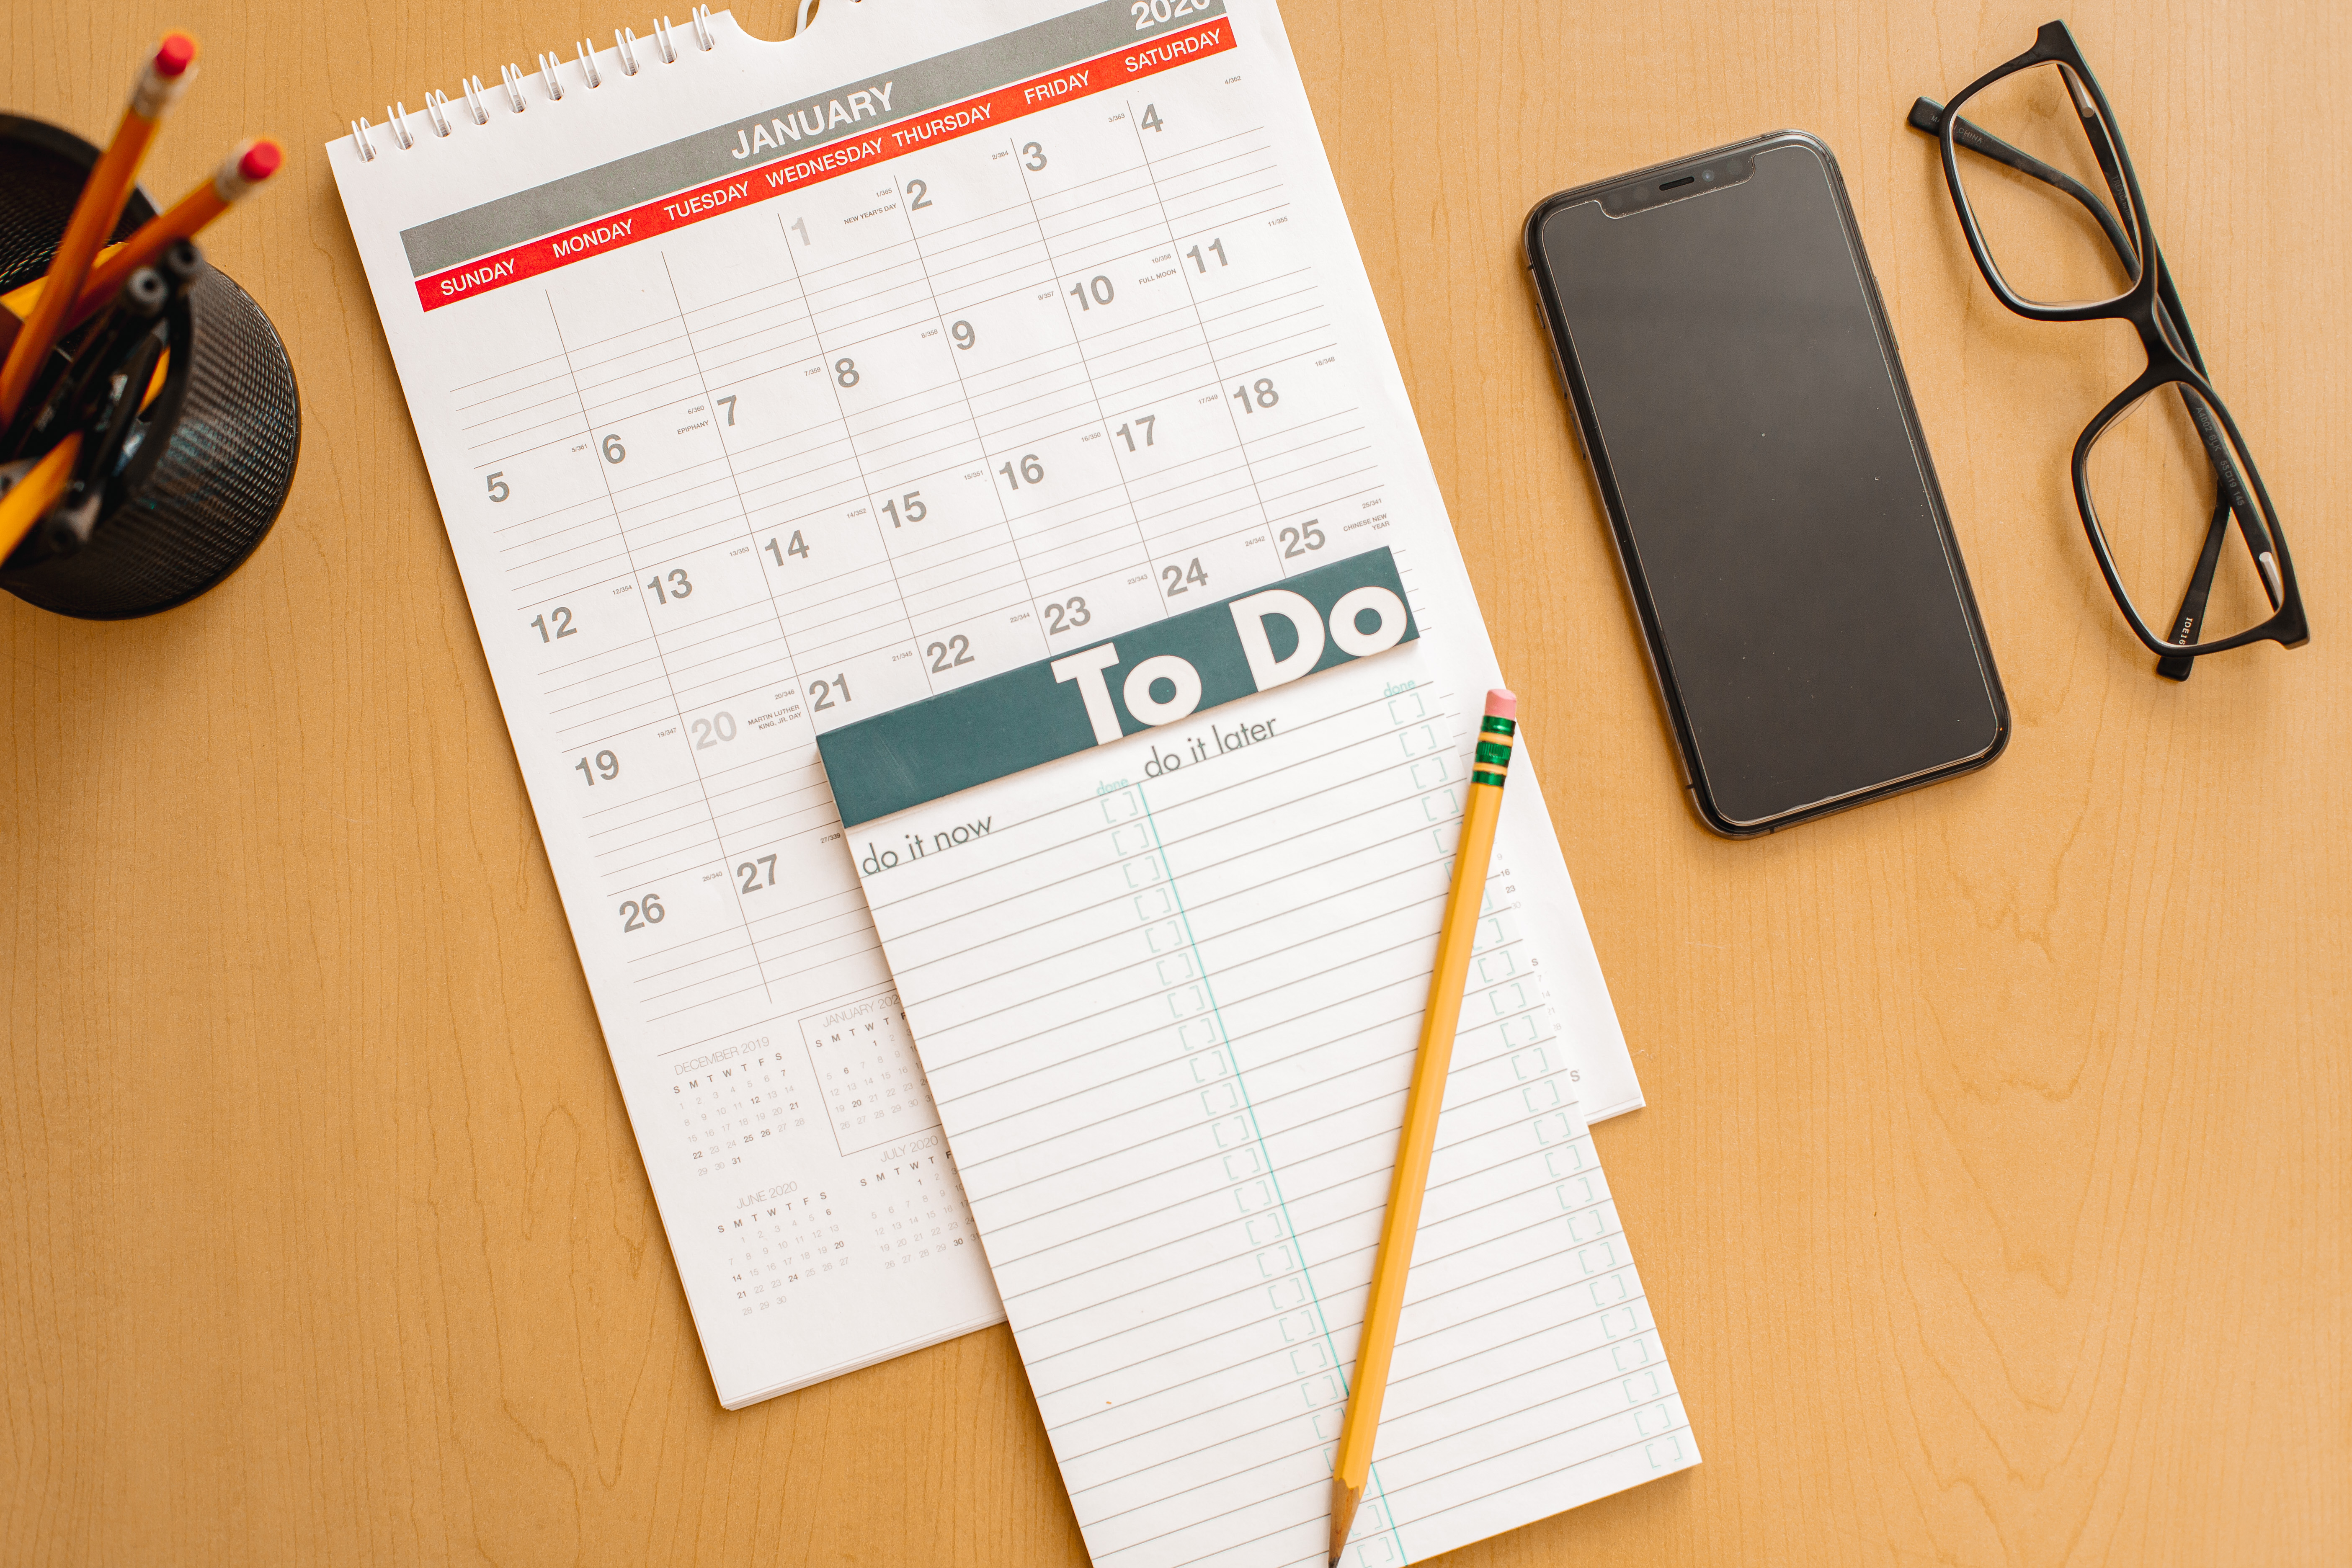 todo-book-on-top-of-a-calendar-showing-the-month-o-TYBTWC4